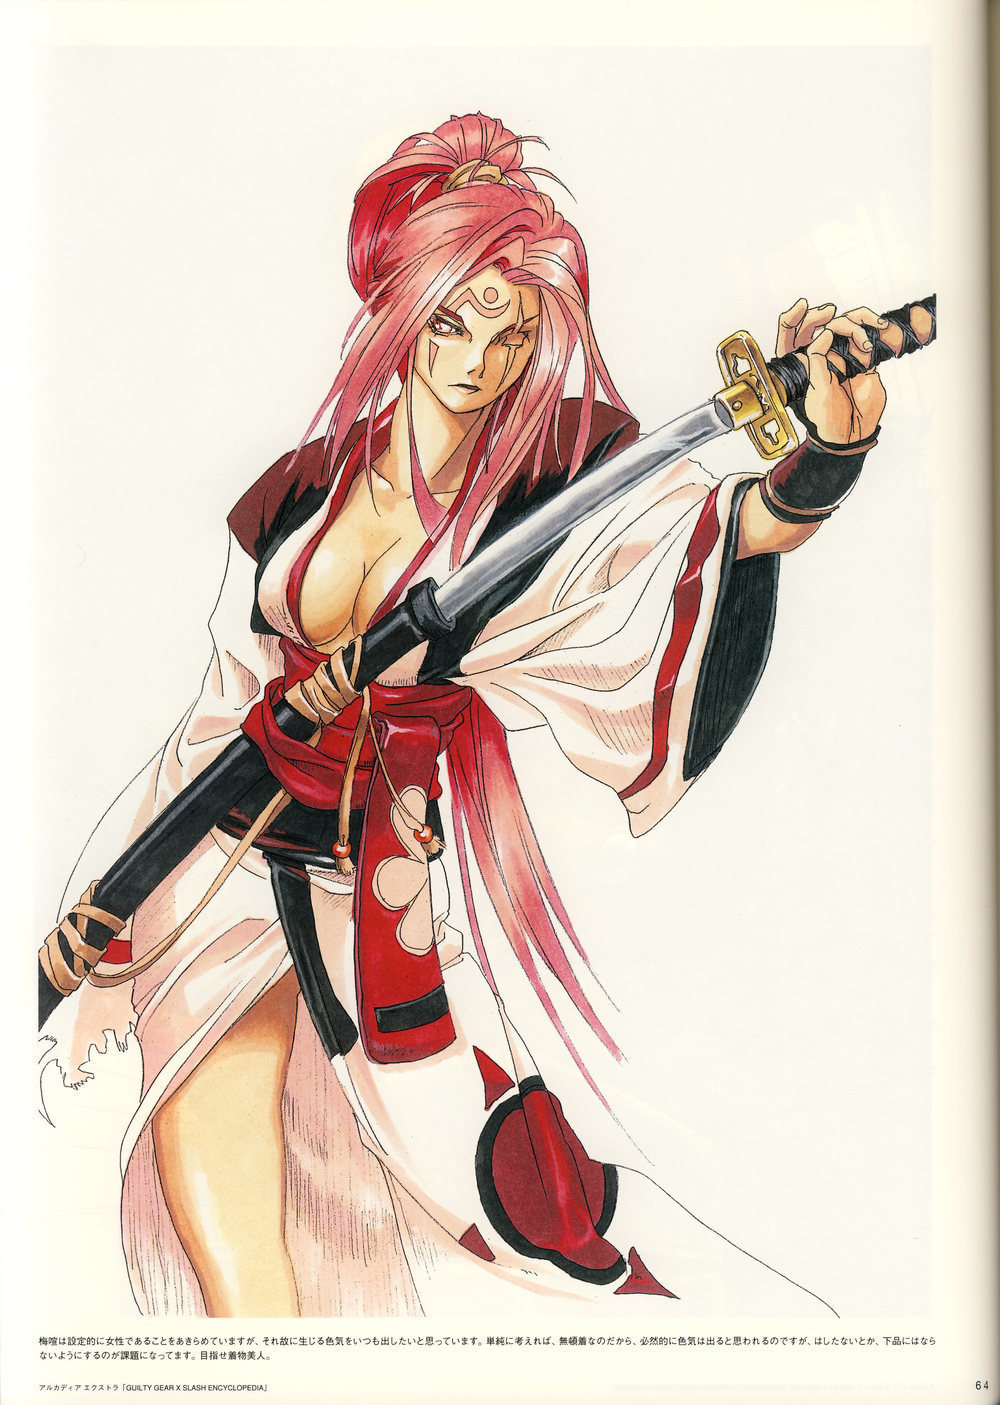 《罪恶装备-ARTWORKS OFGUILTY GEAR X》 (3).jpg